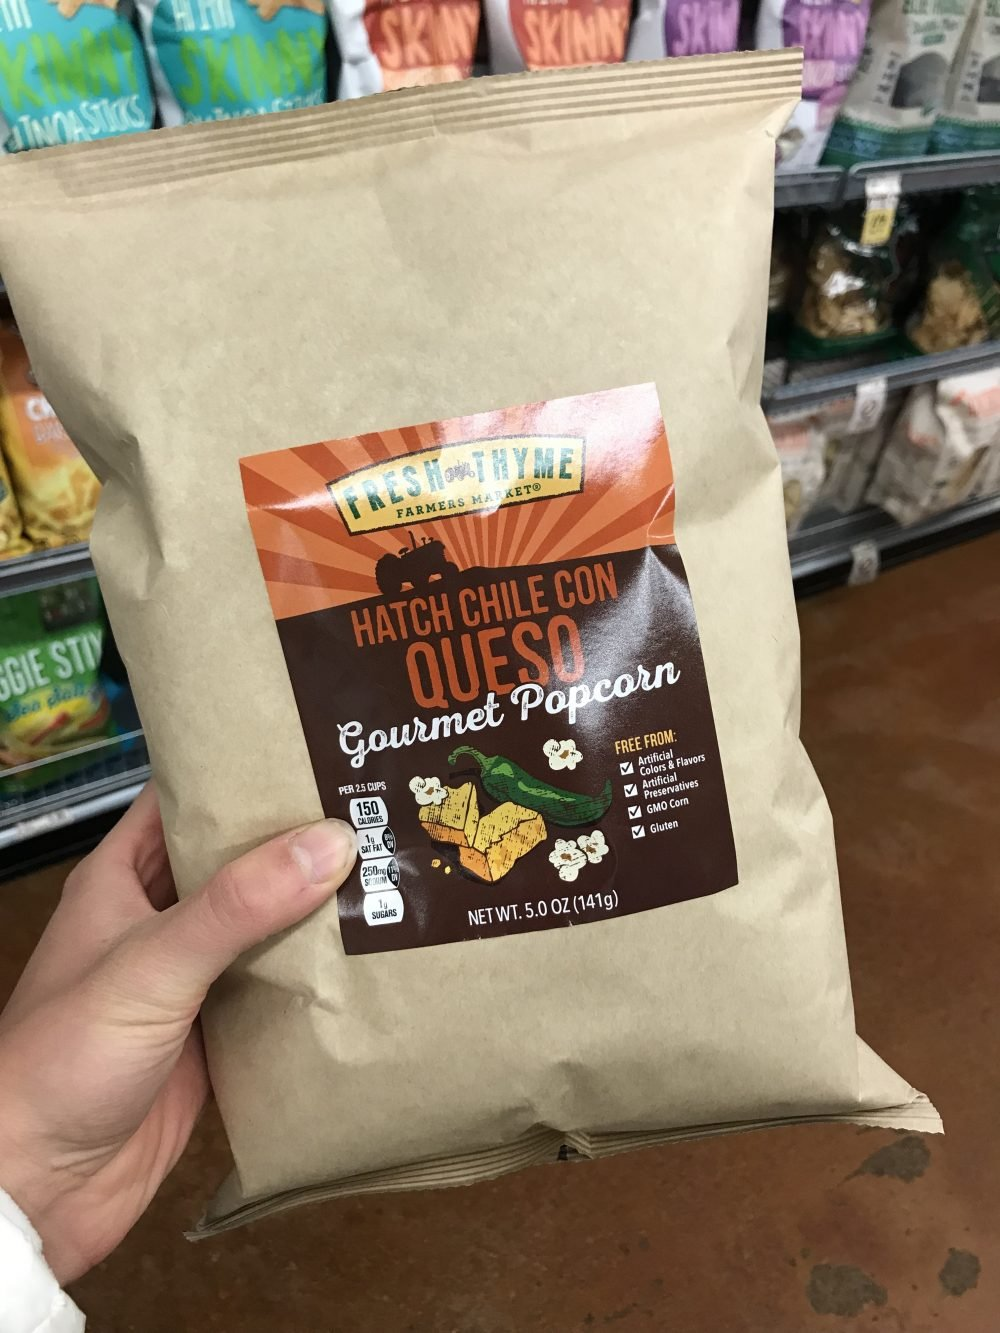 Beige bag of gourmet popcorn